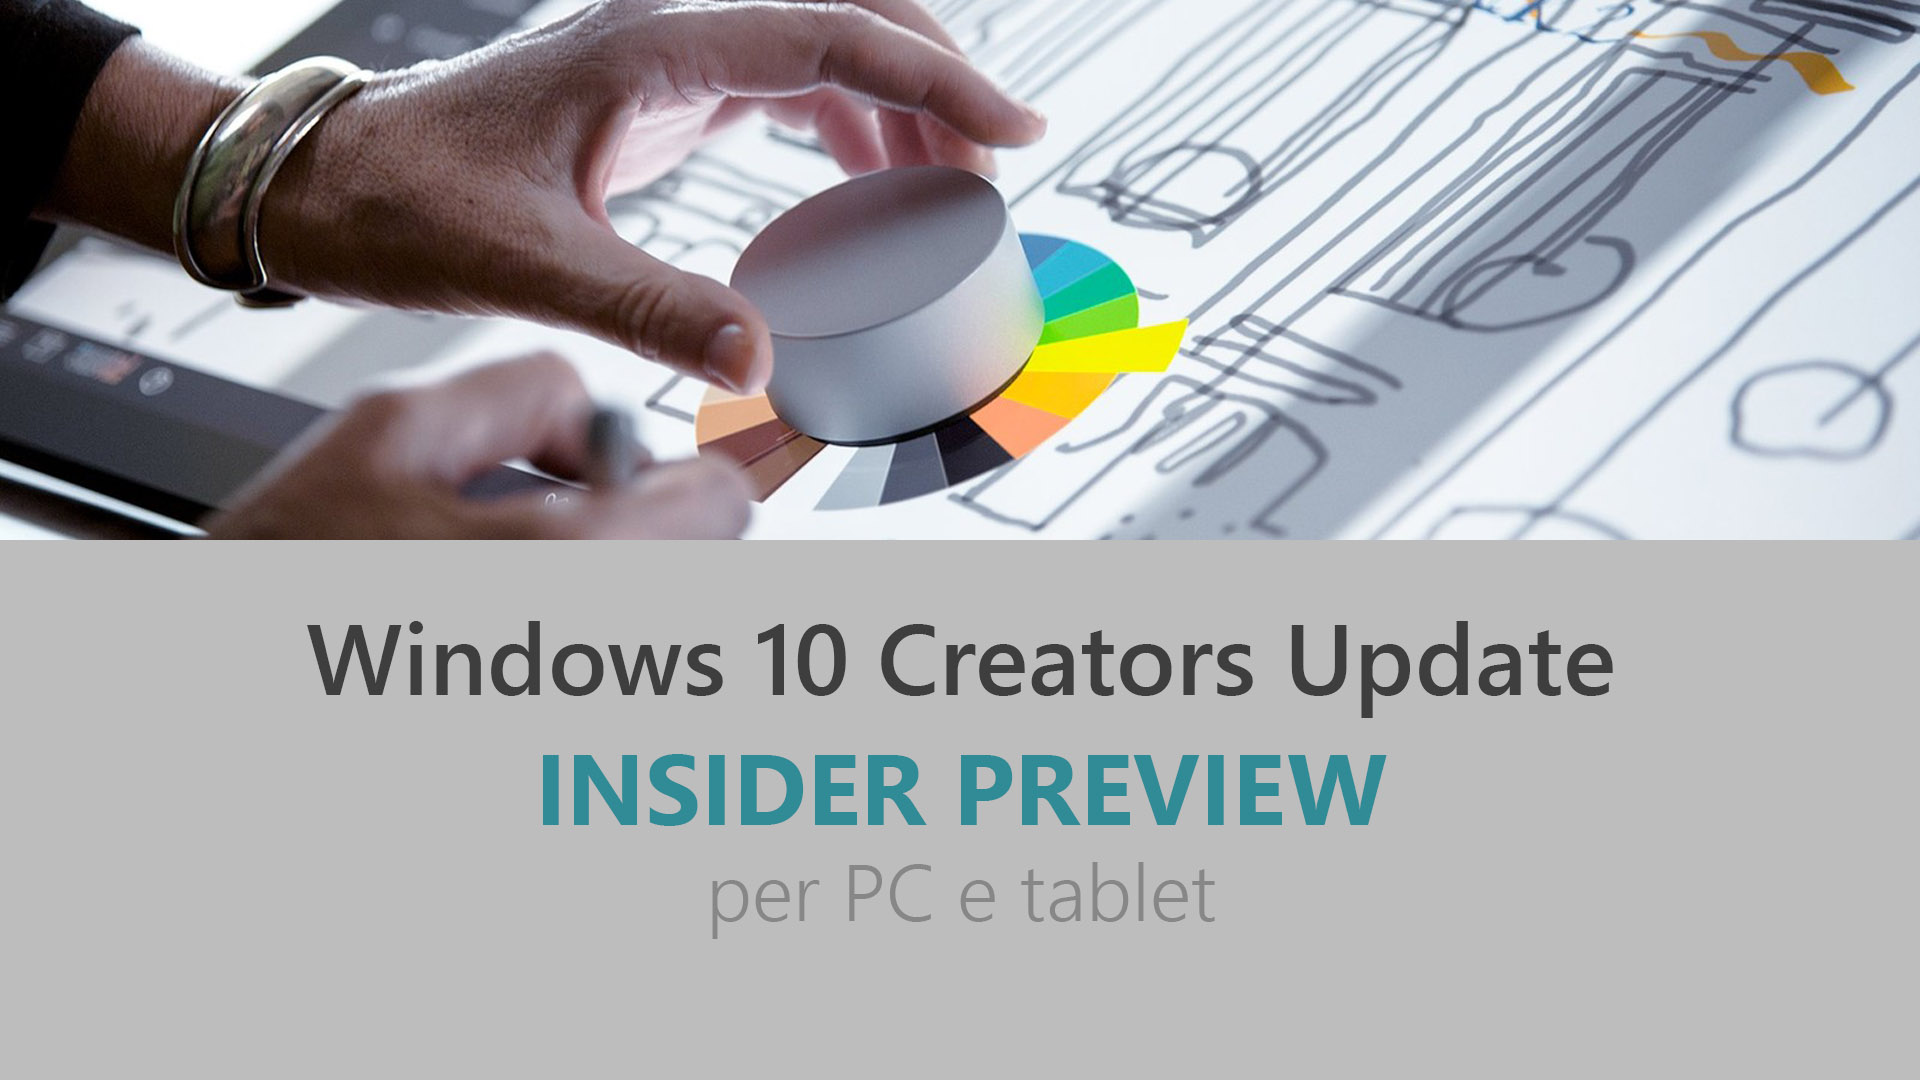 download insider preview update manually